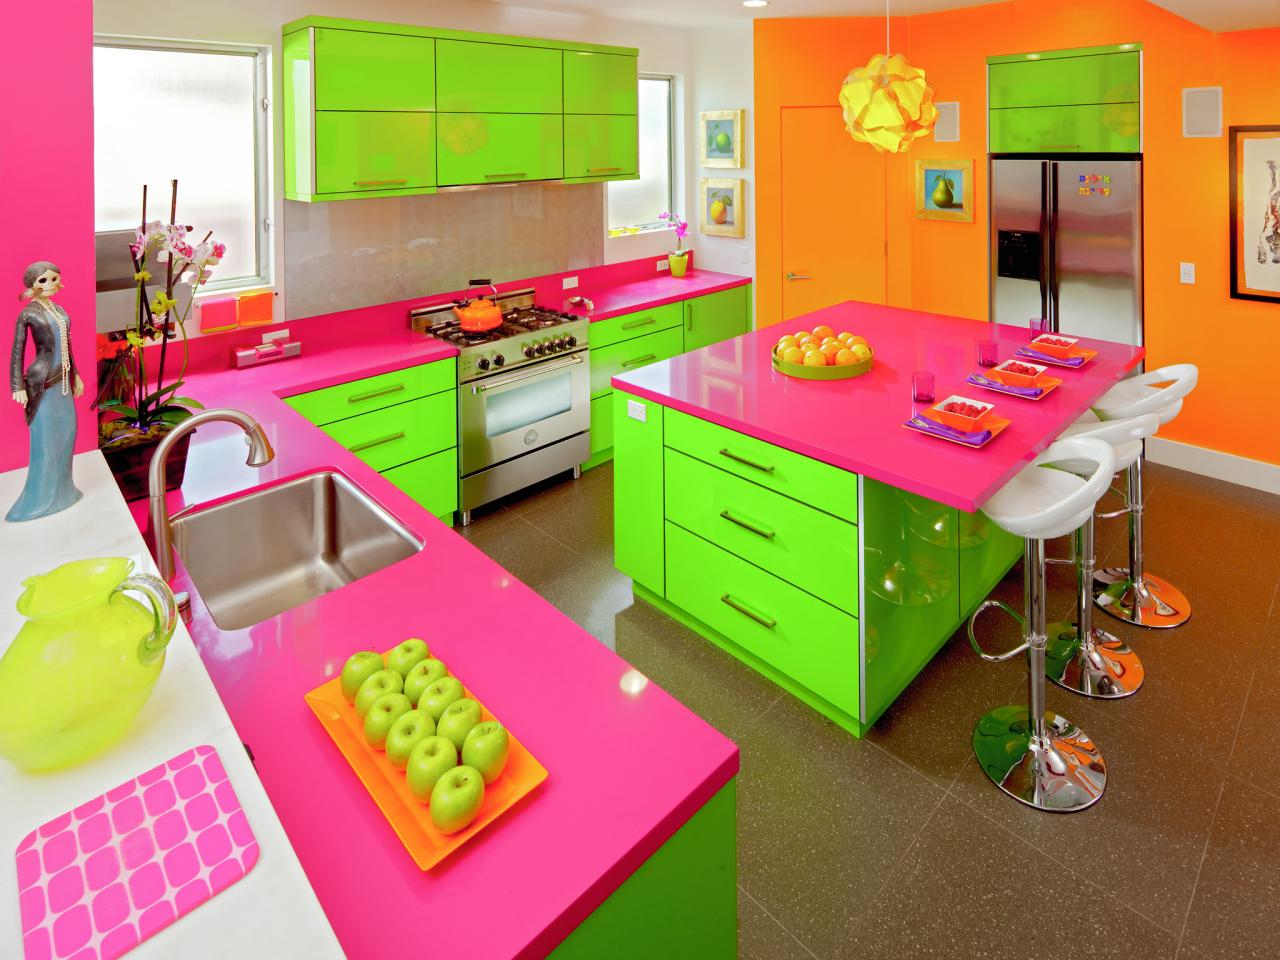 Colorful Kitchen Decorating Ideas For Your Sweet Home - Smart Growth on colorful kitchen cabinets, colorful kitchen decorating ideas, colorful ideas for desk, colorful ideas for outdoor dining, colorful ideas for backyard, colorful french country kitchen, colorful white kitchens, colorful kitchen backsplash,